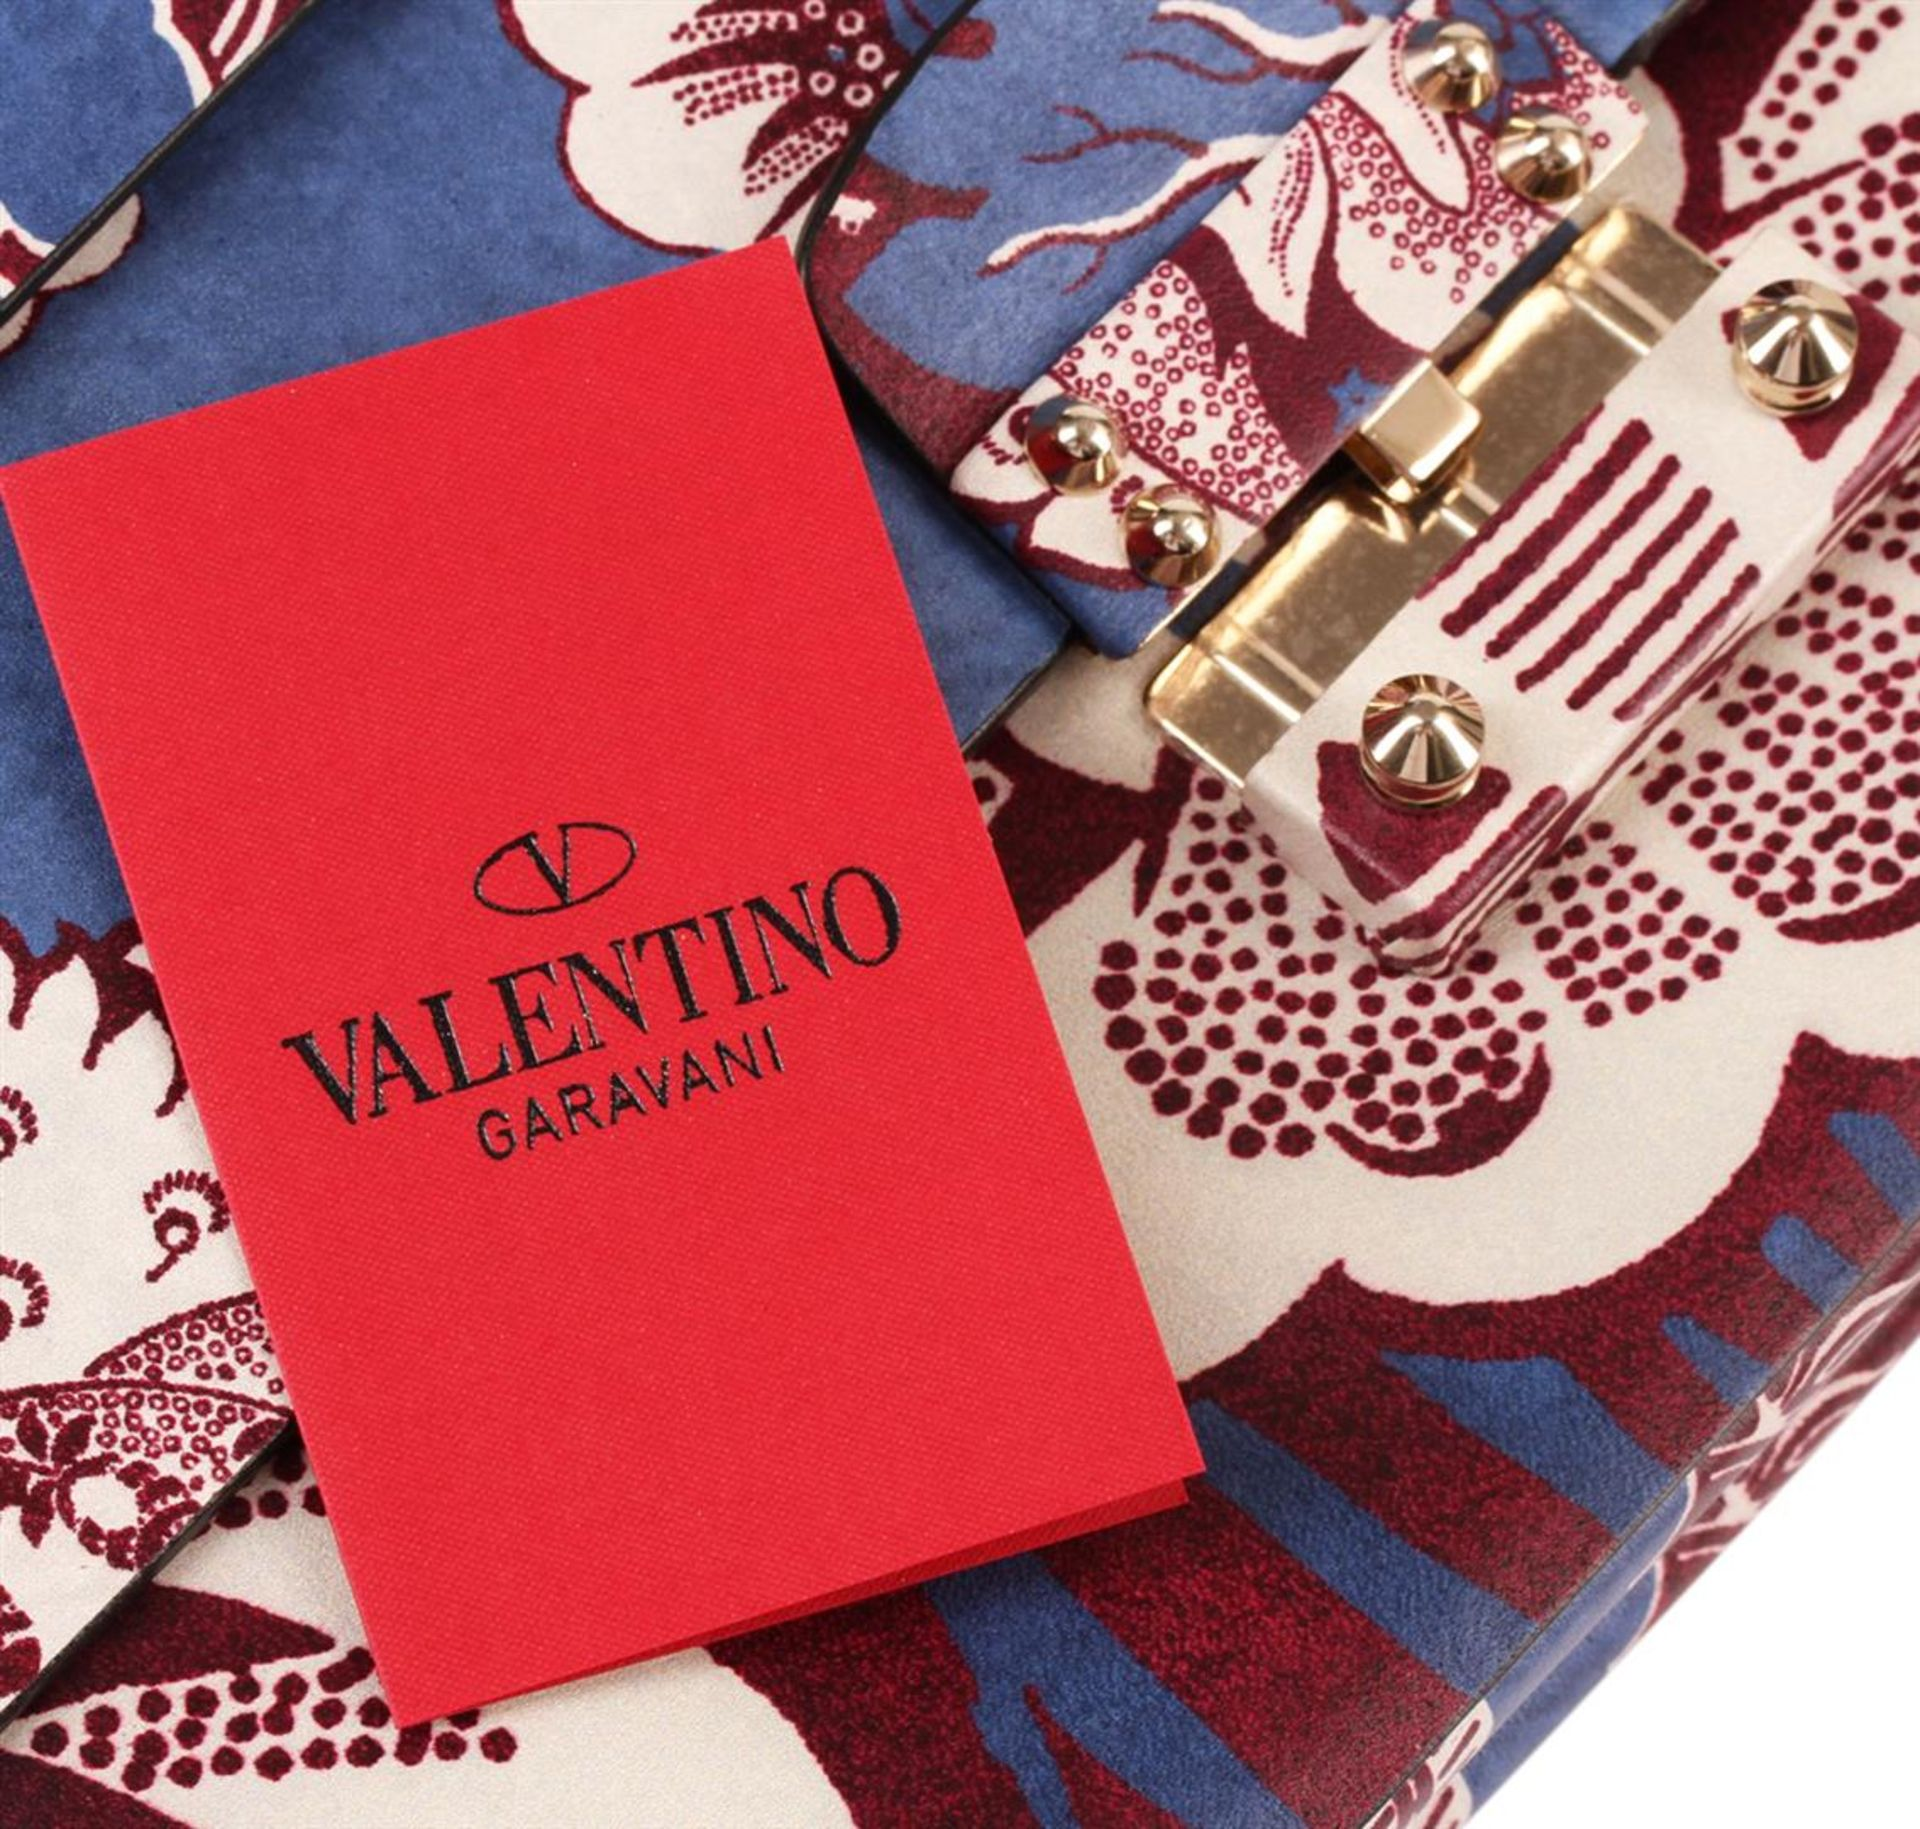 Valentino 2015 Floral Clutch - Image 5 of 5